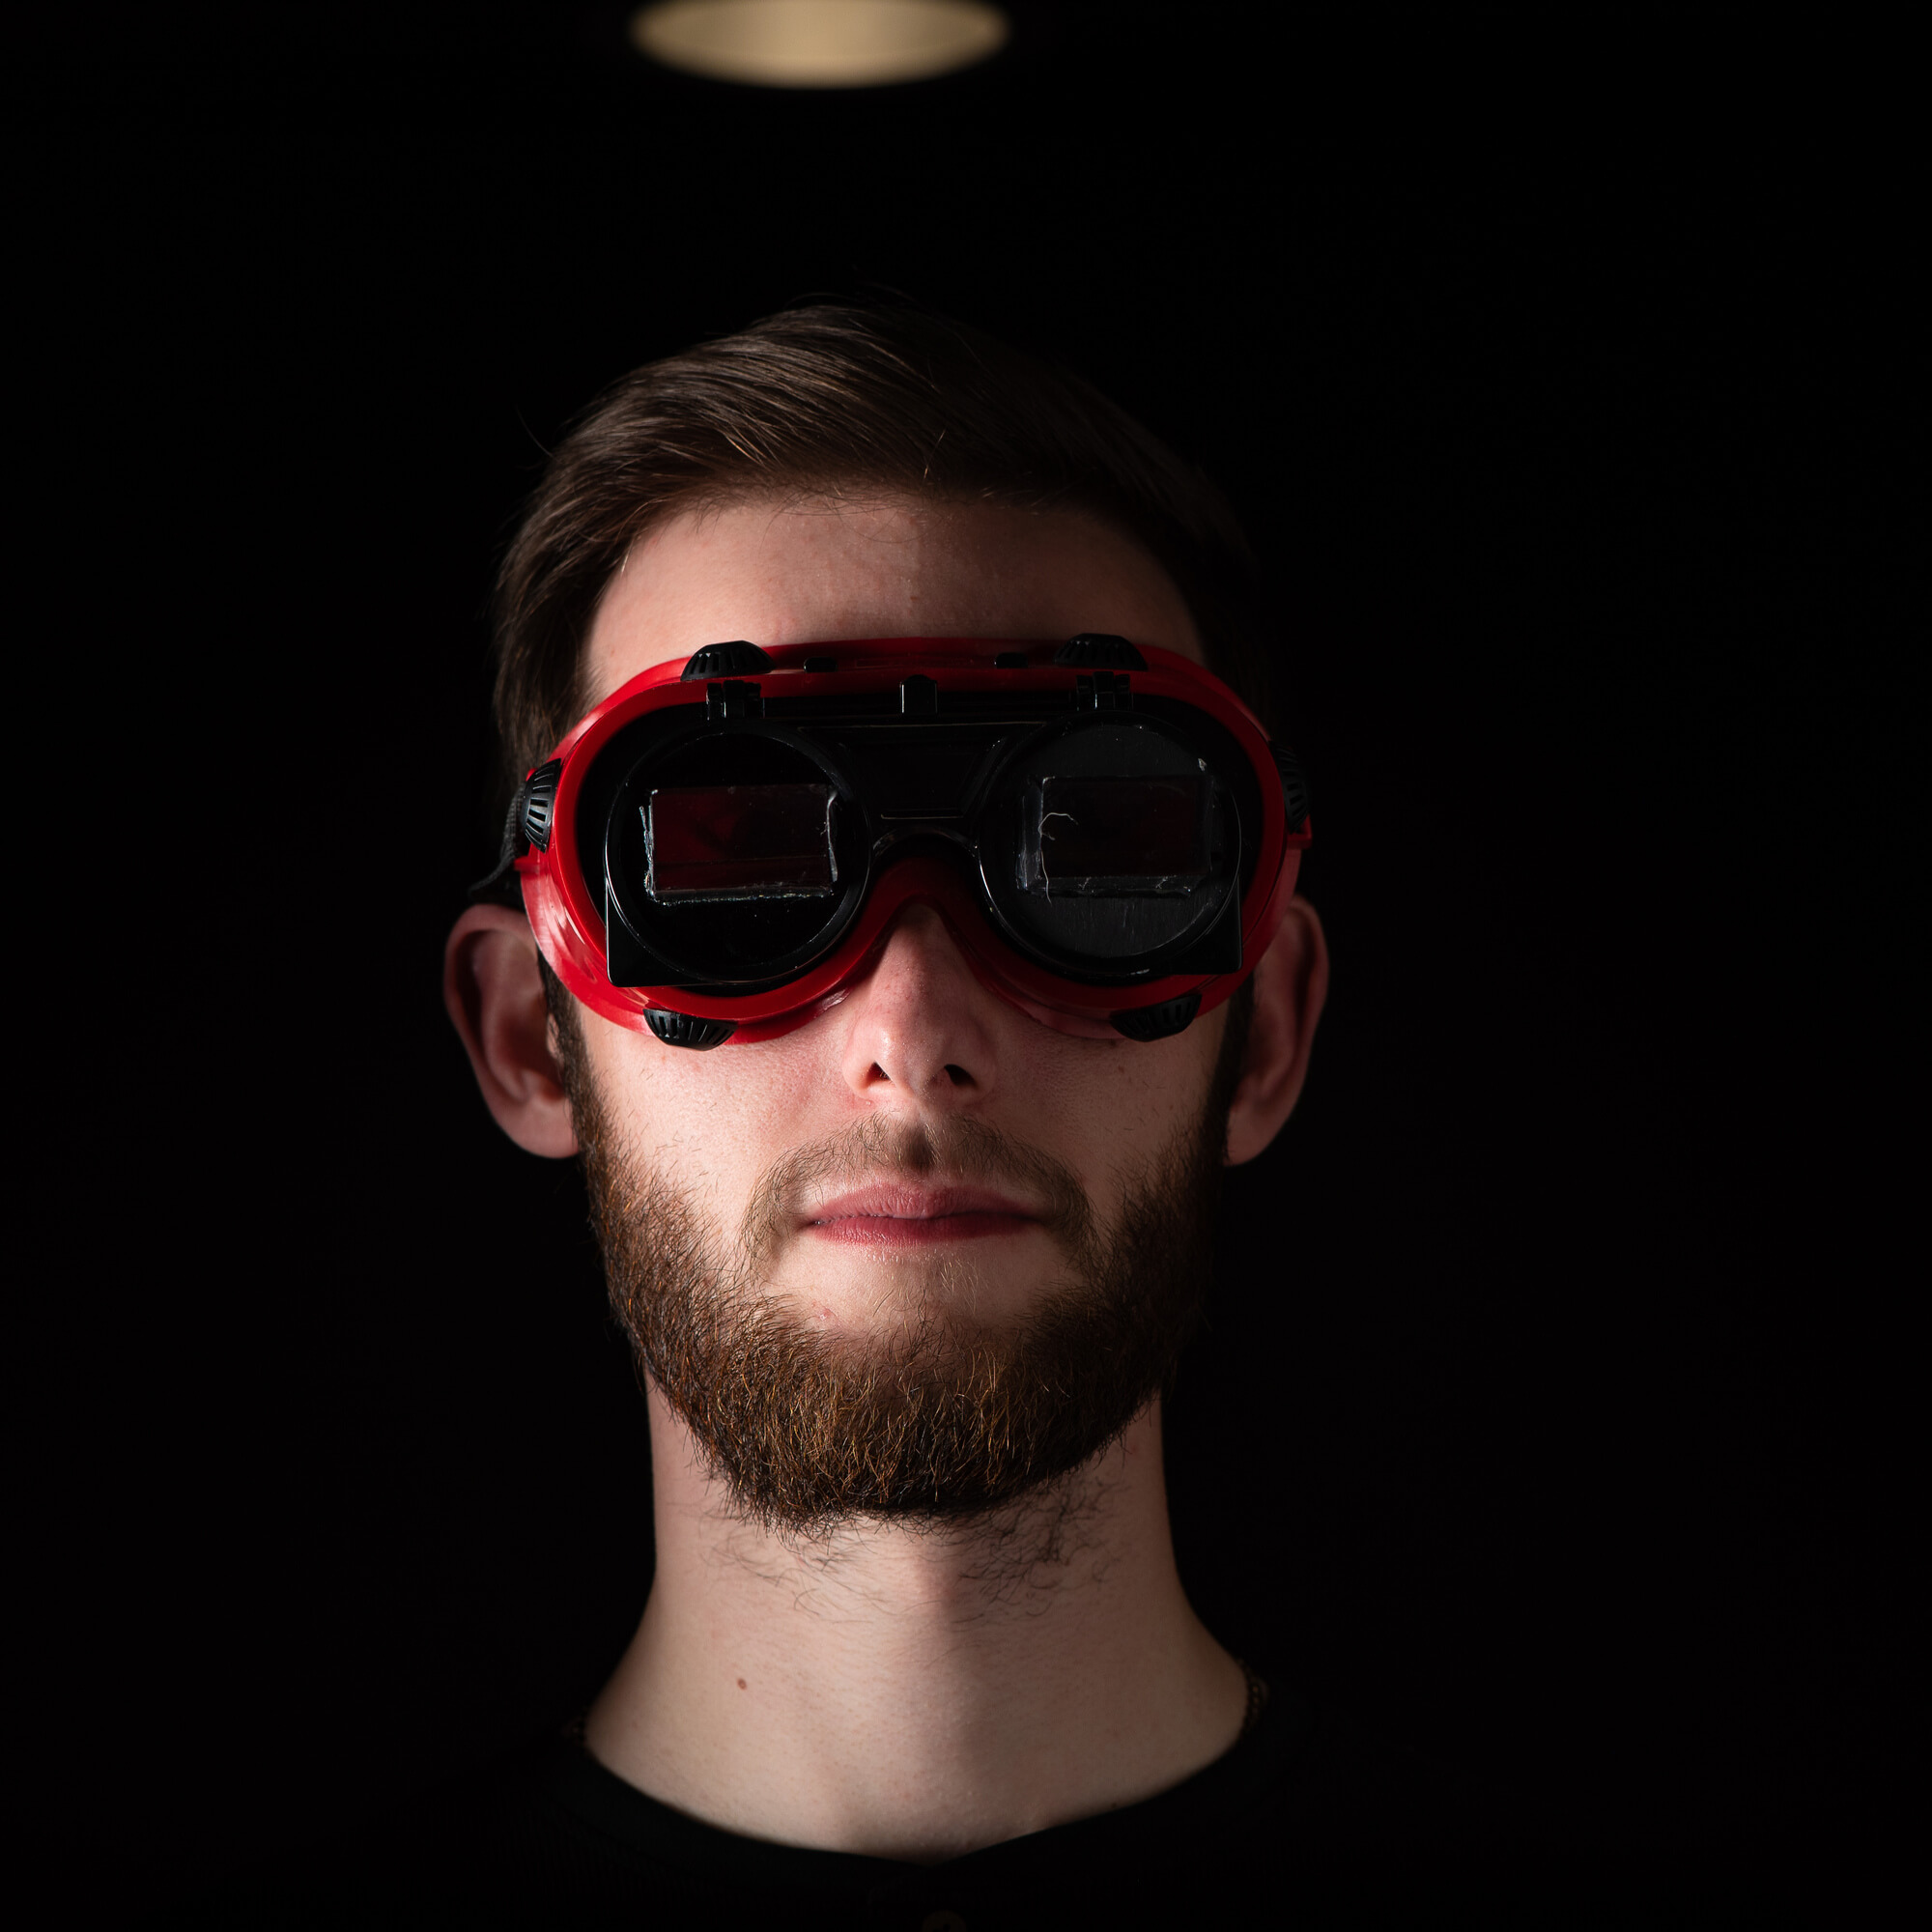 Male wearing red goggles in black room